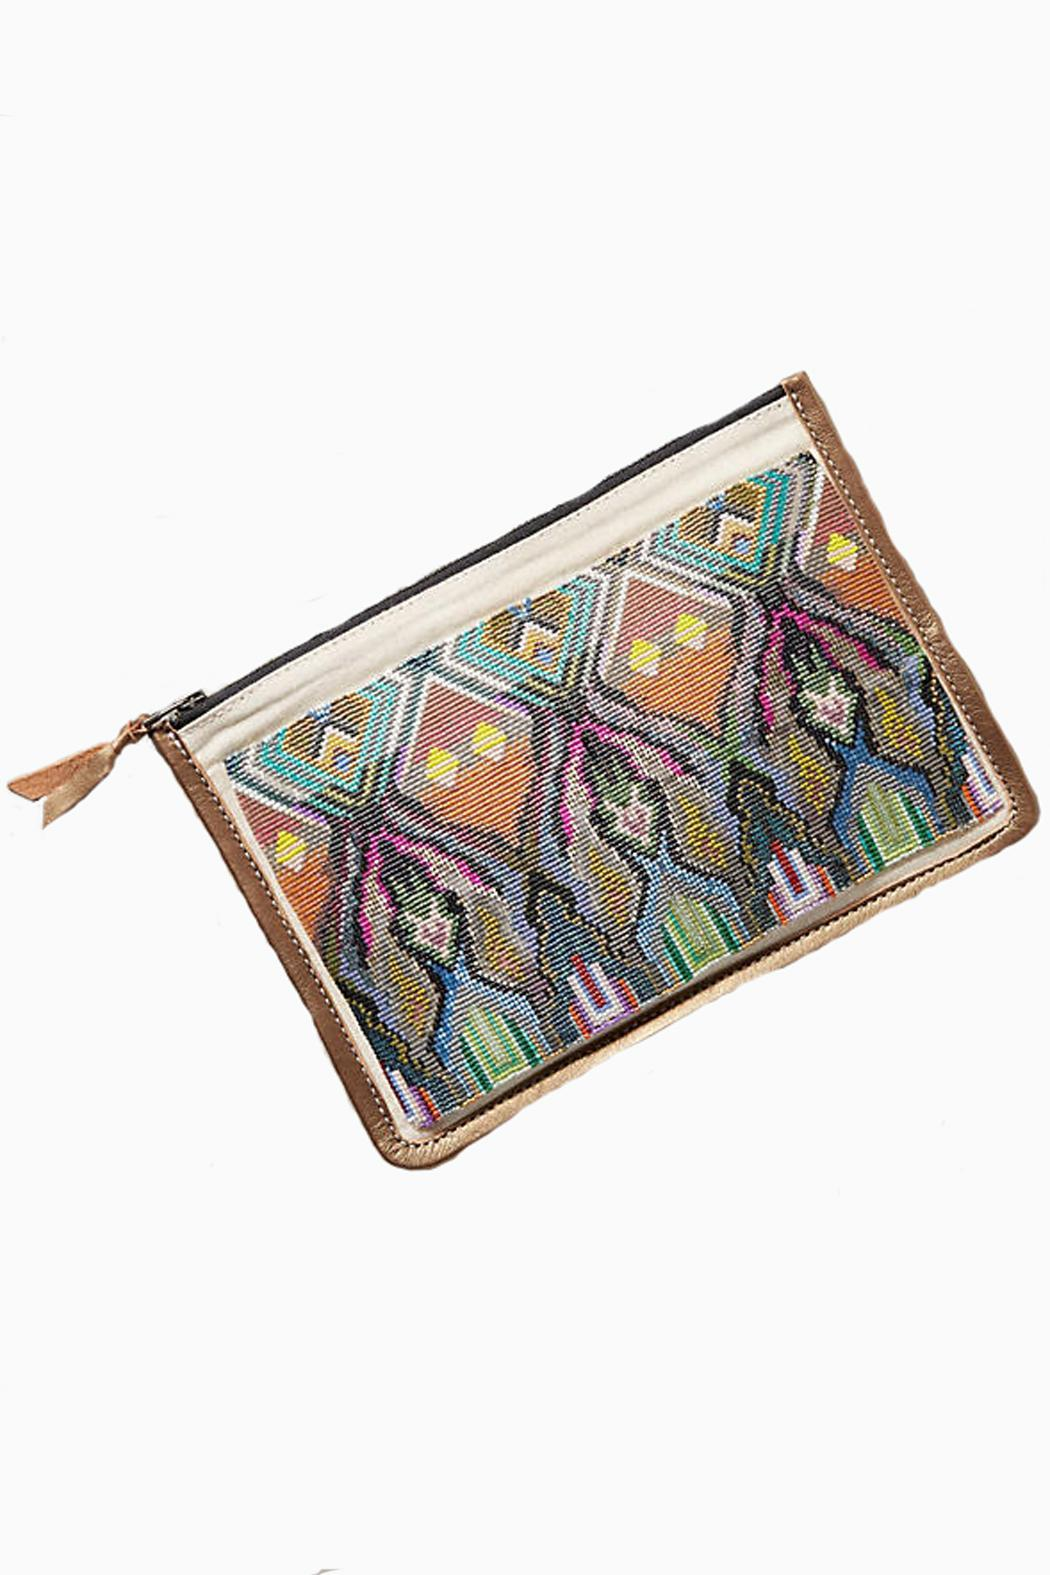 Julie Rofman Watu Beaded Clutch - Main Image